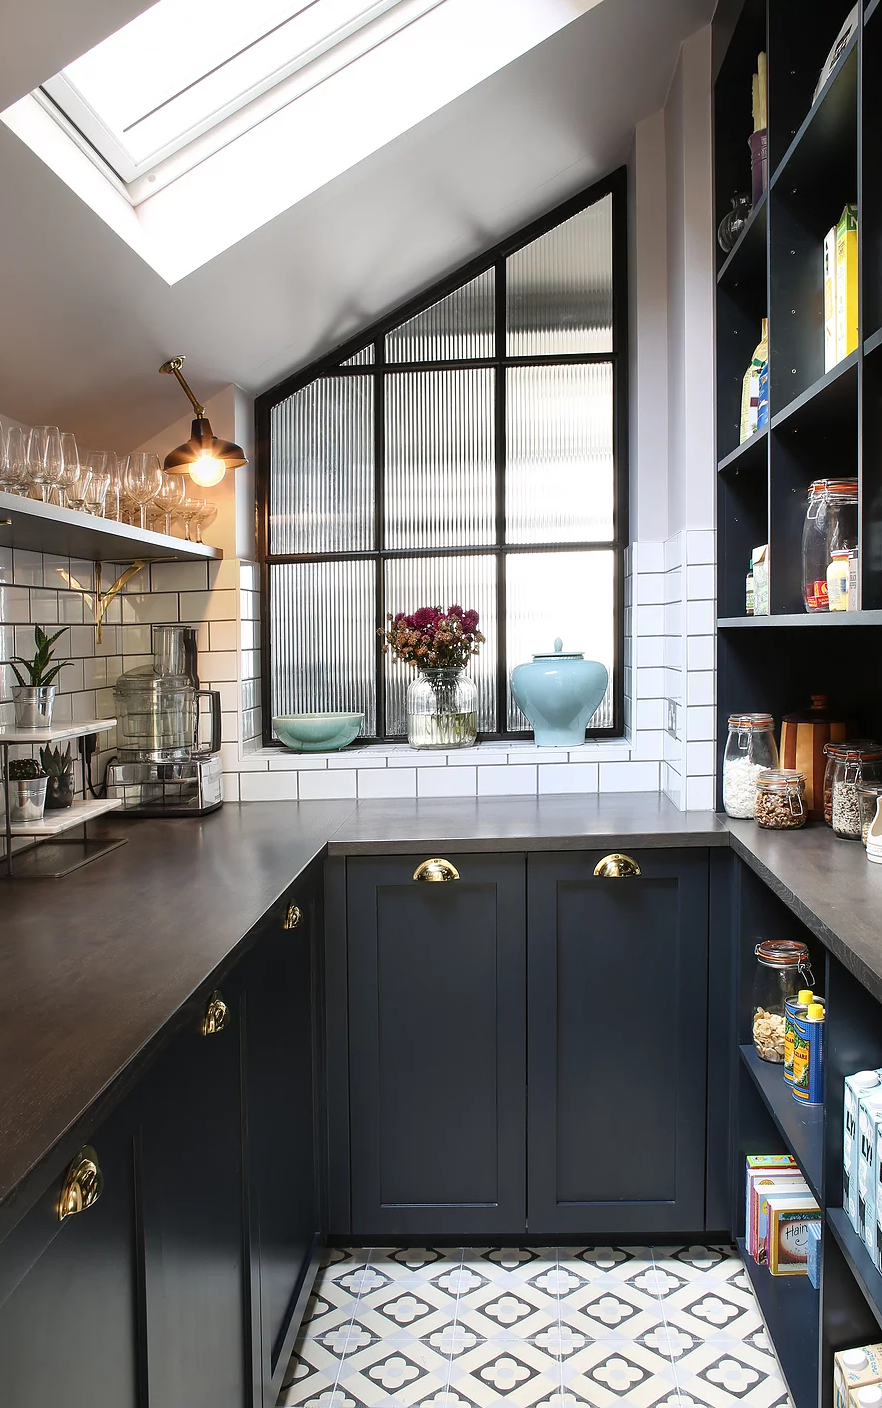 1553970809 199 amazing kitchen design with touches of gold - Amazing Kitchen Design With Touches Of Gold